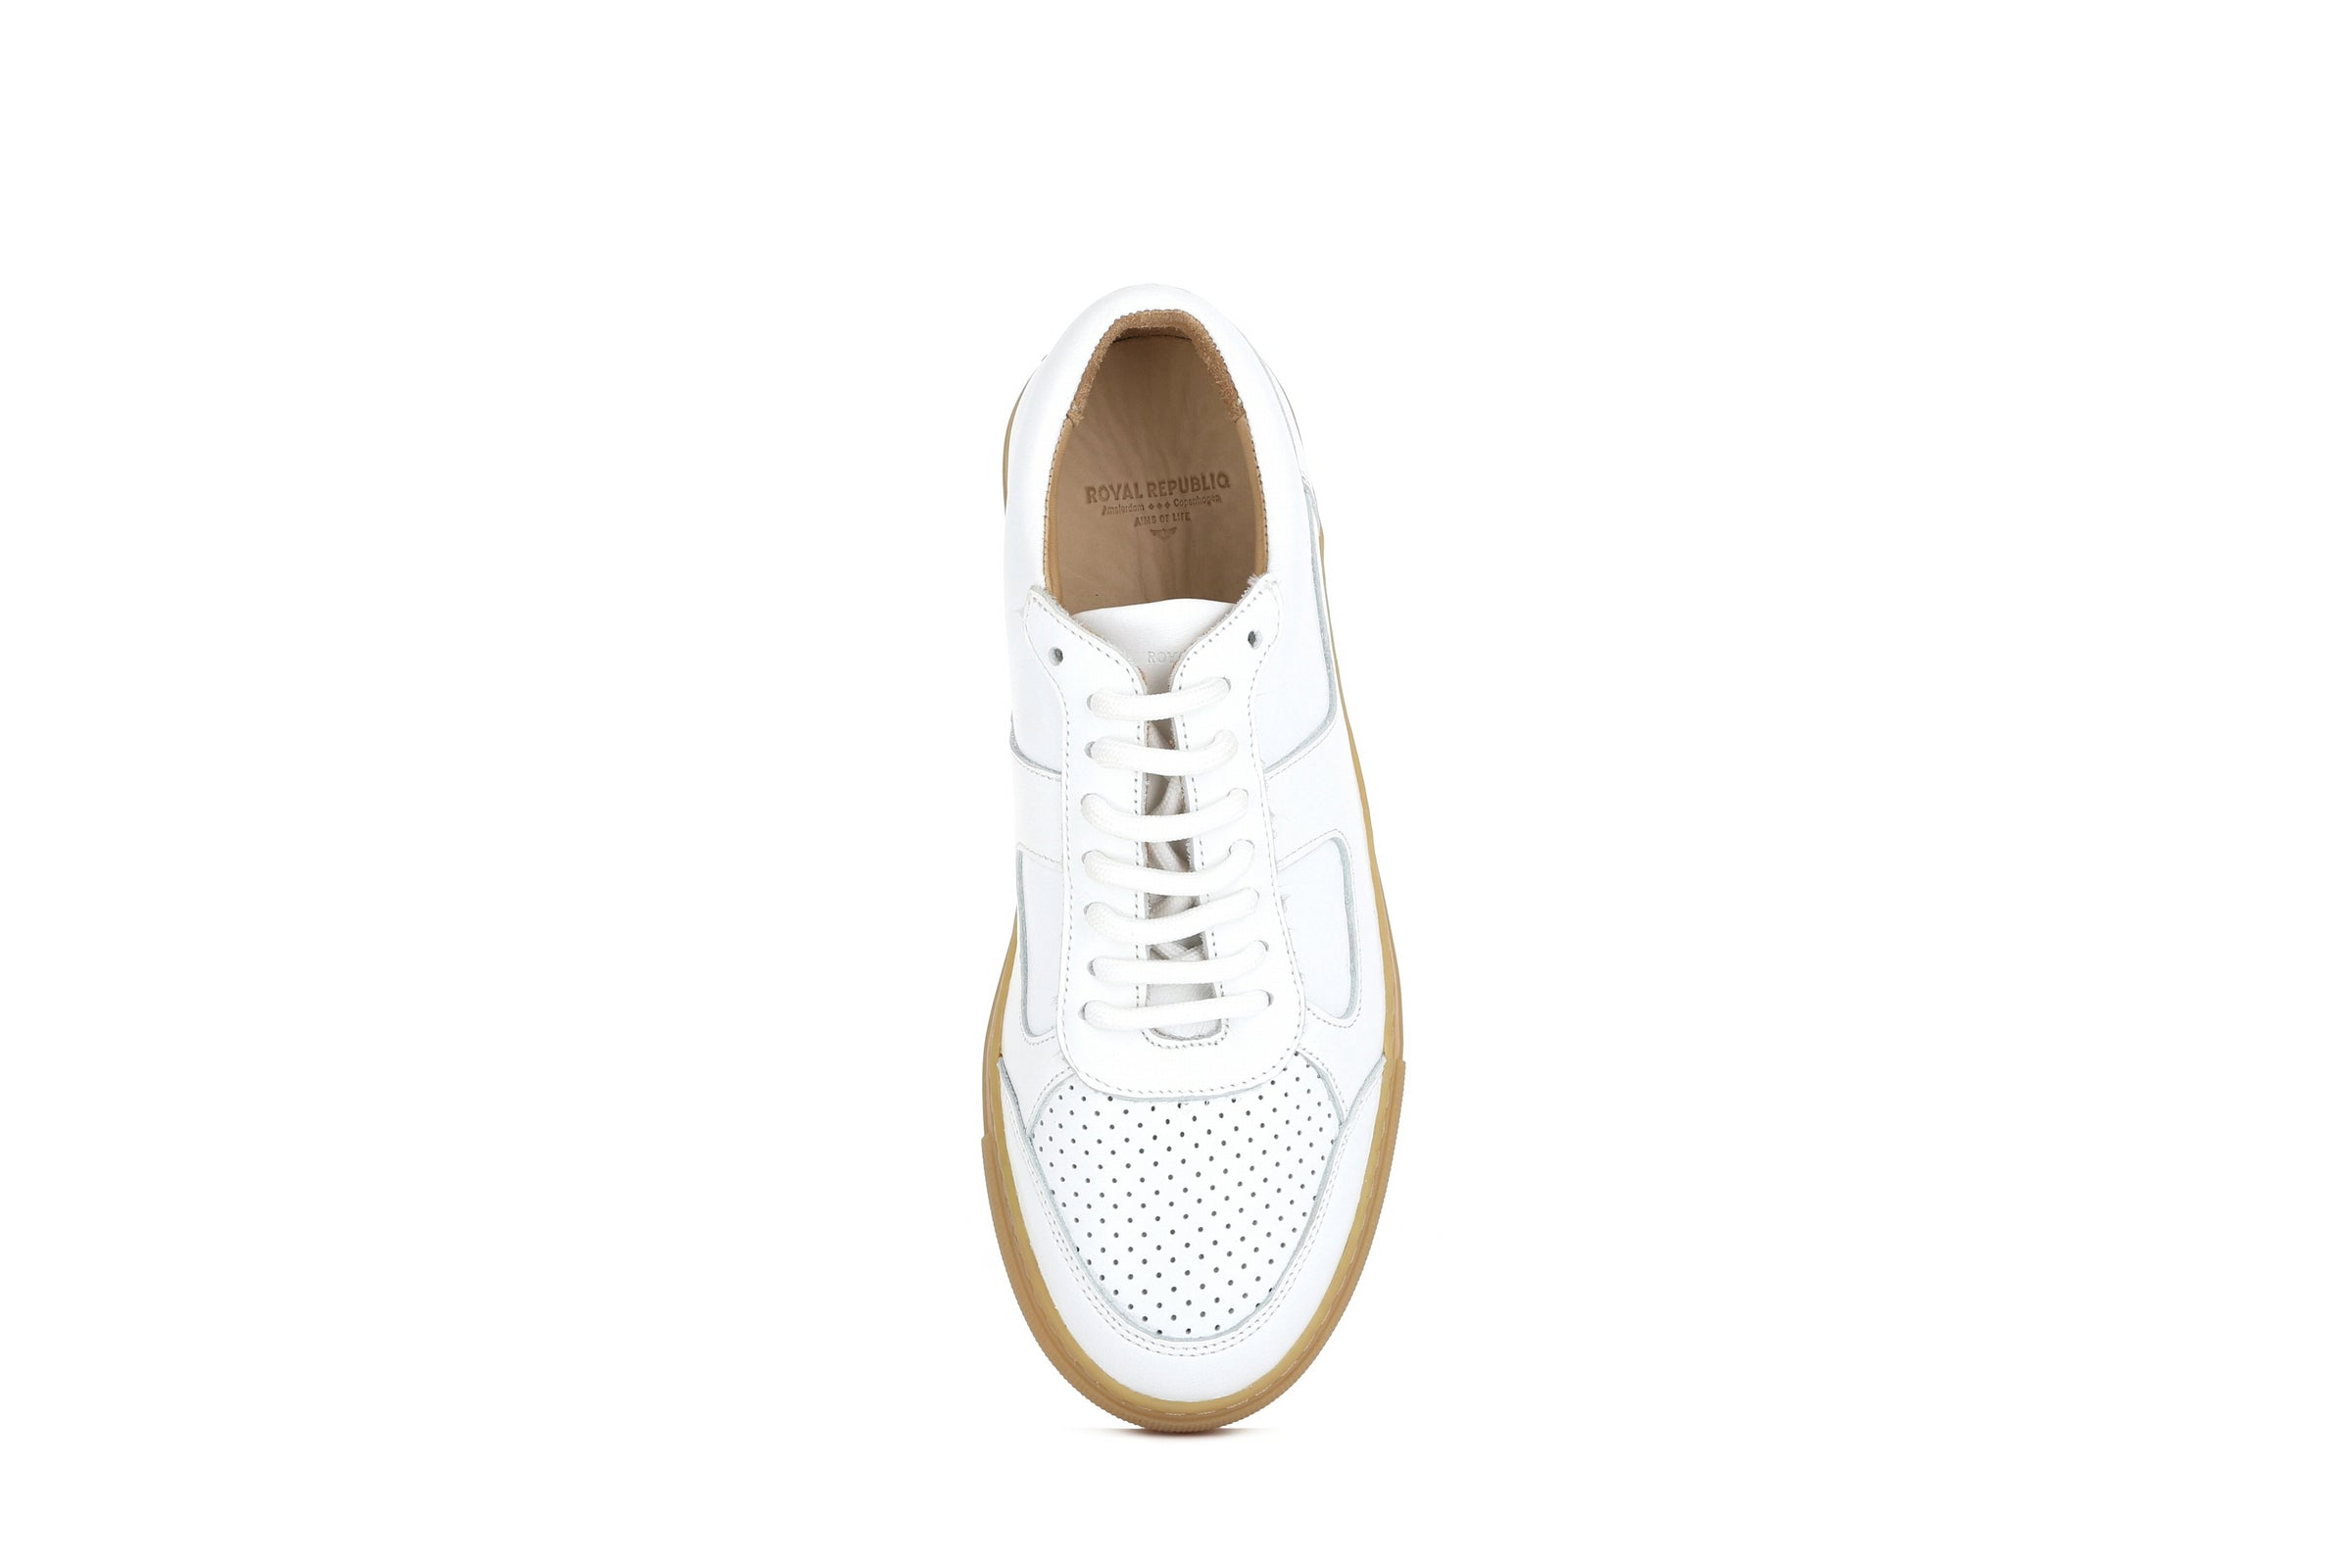 Elpique Tennis Shoe